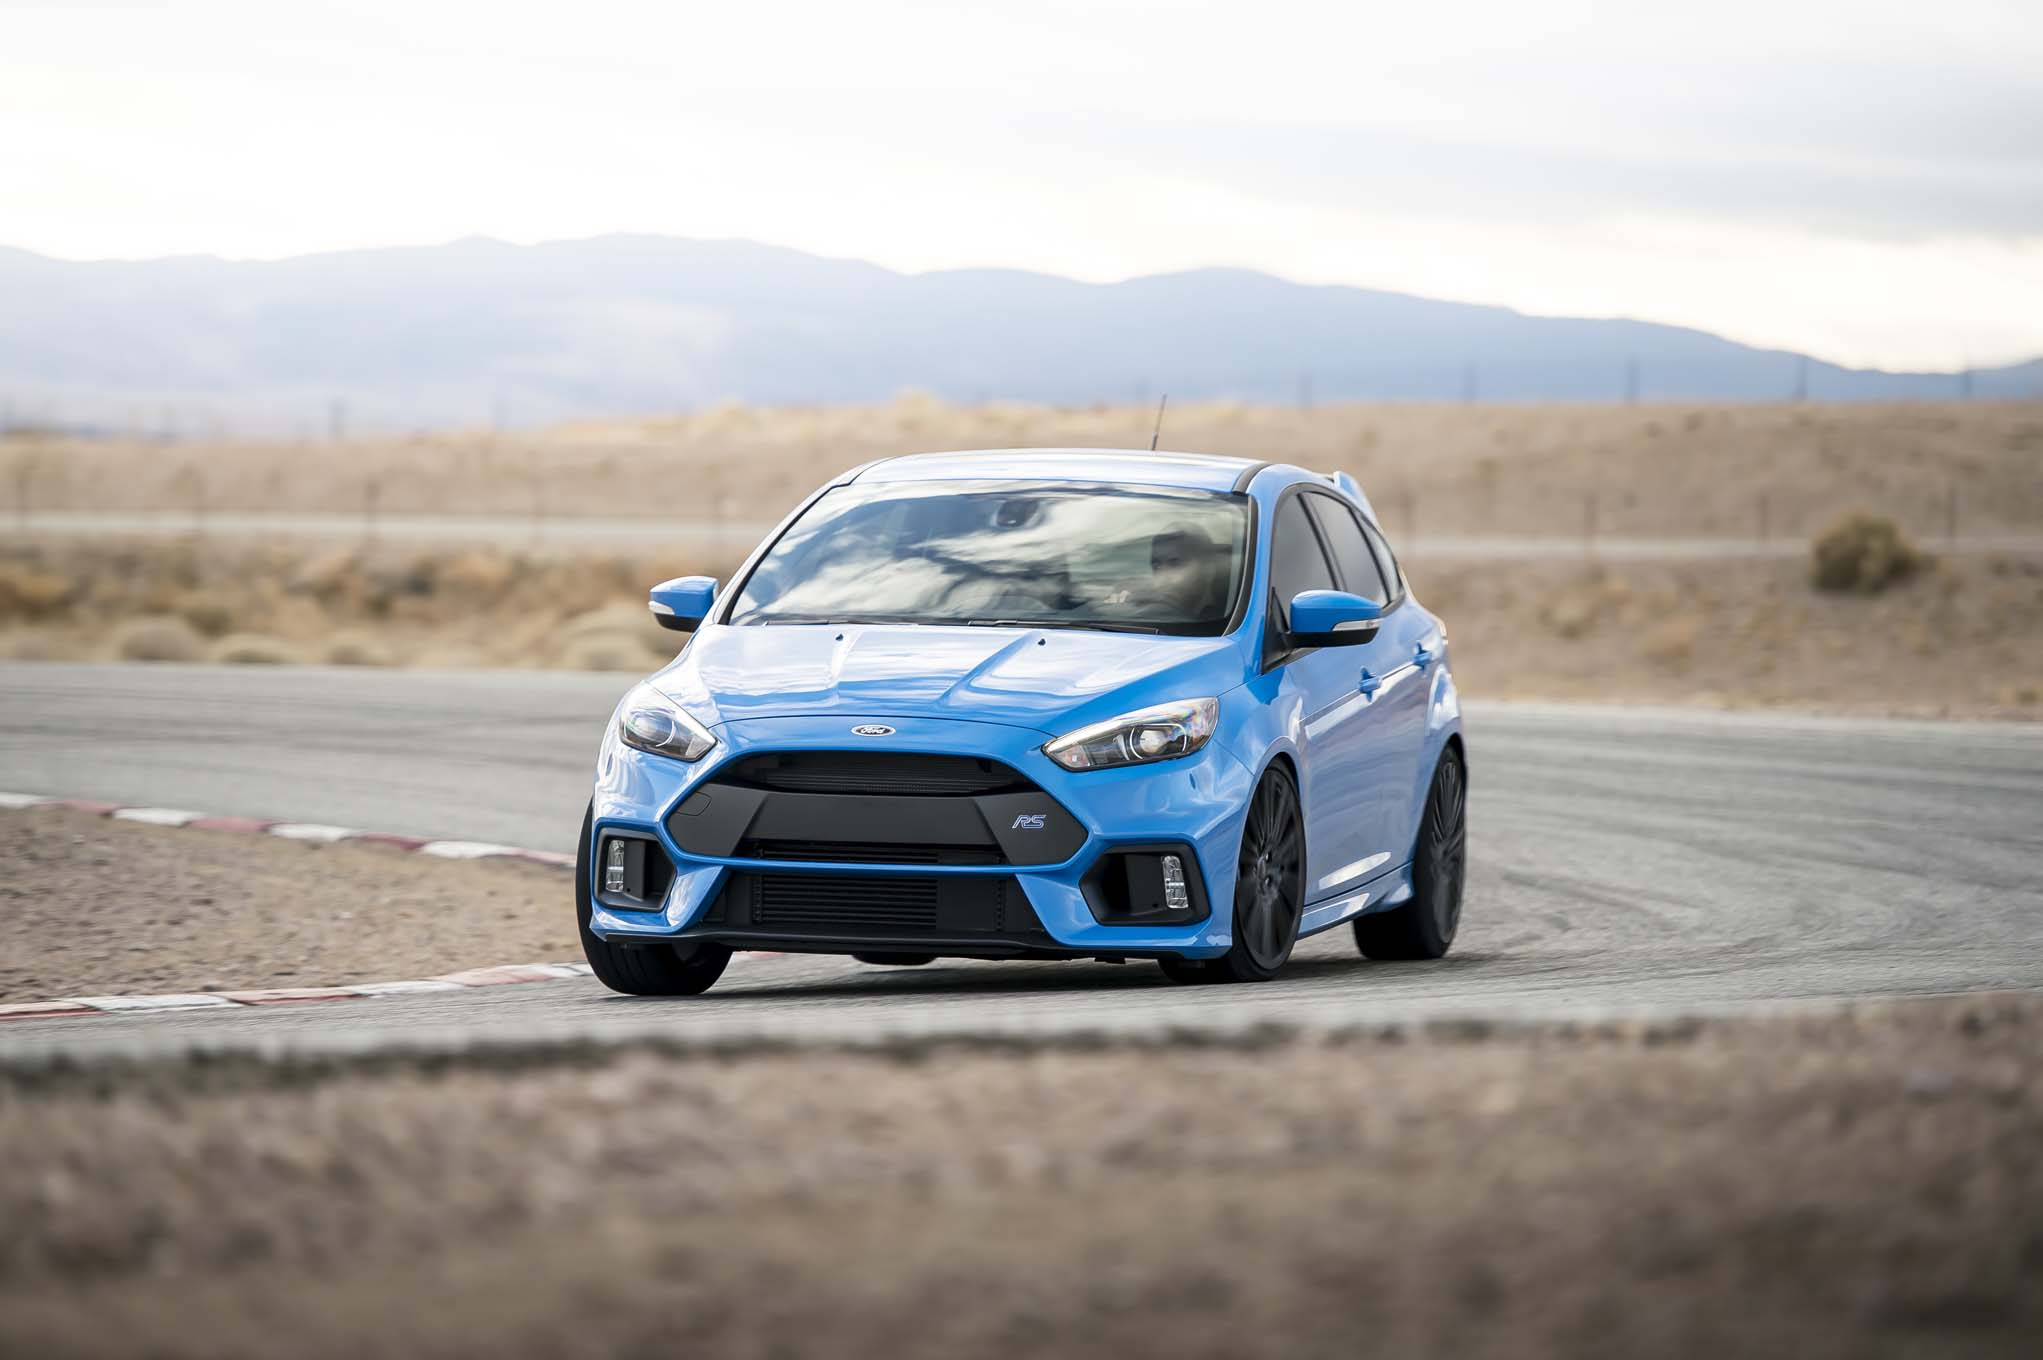 2016 Ford Focus RS front end in motion